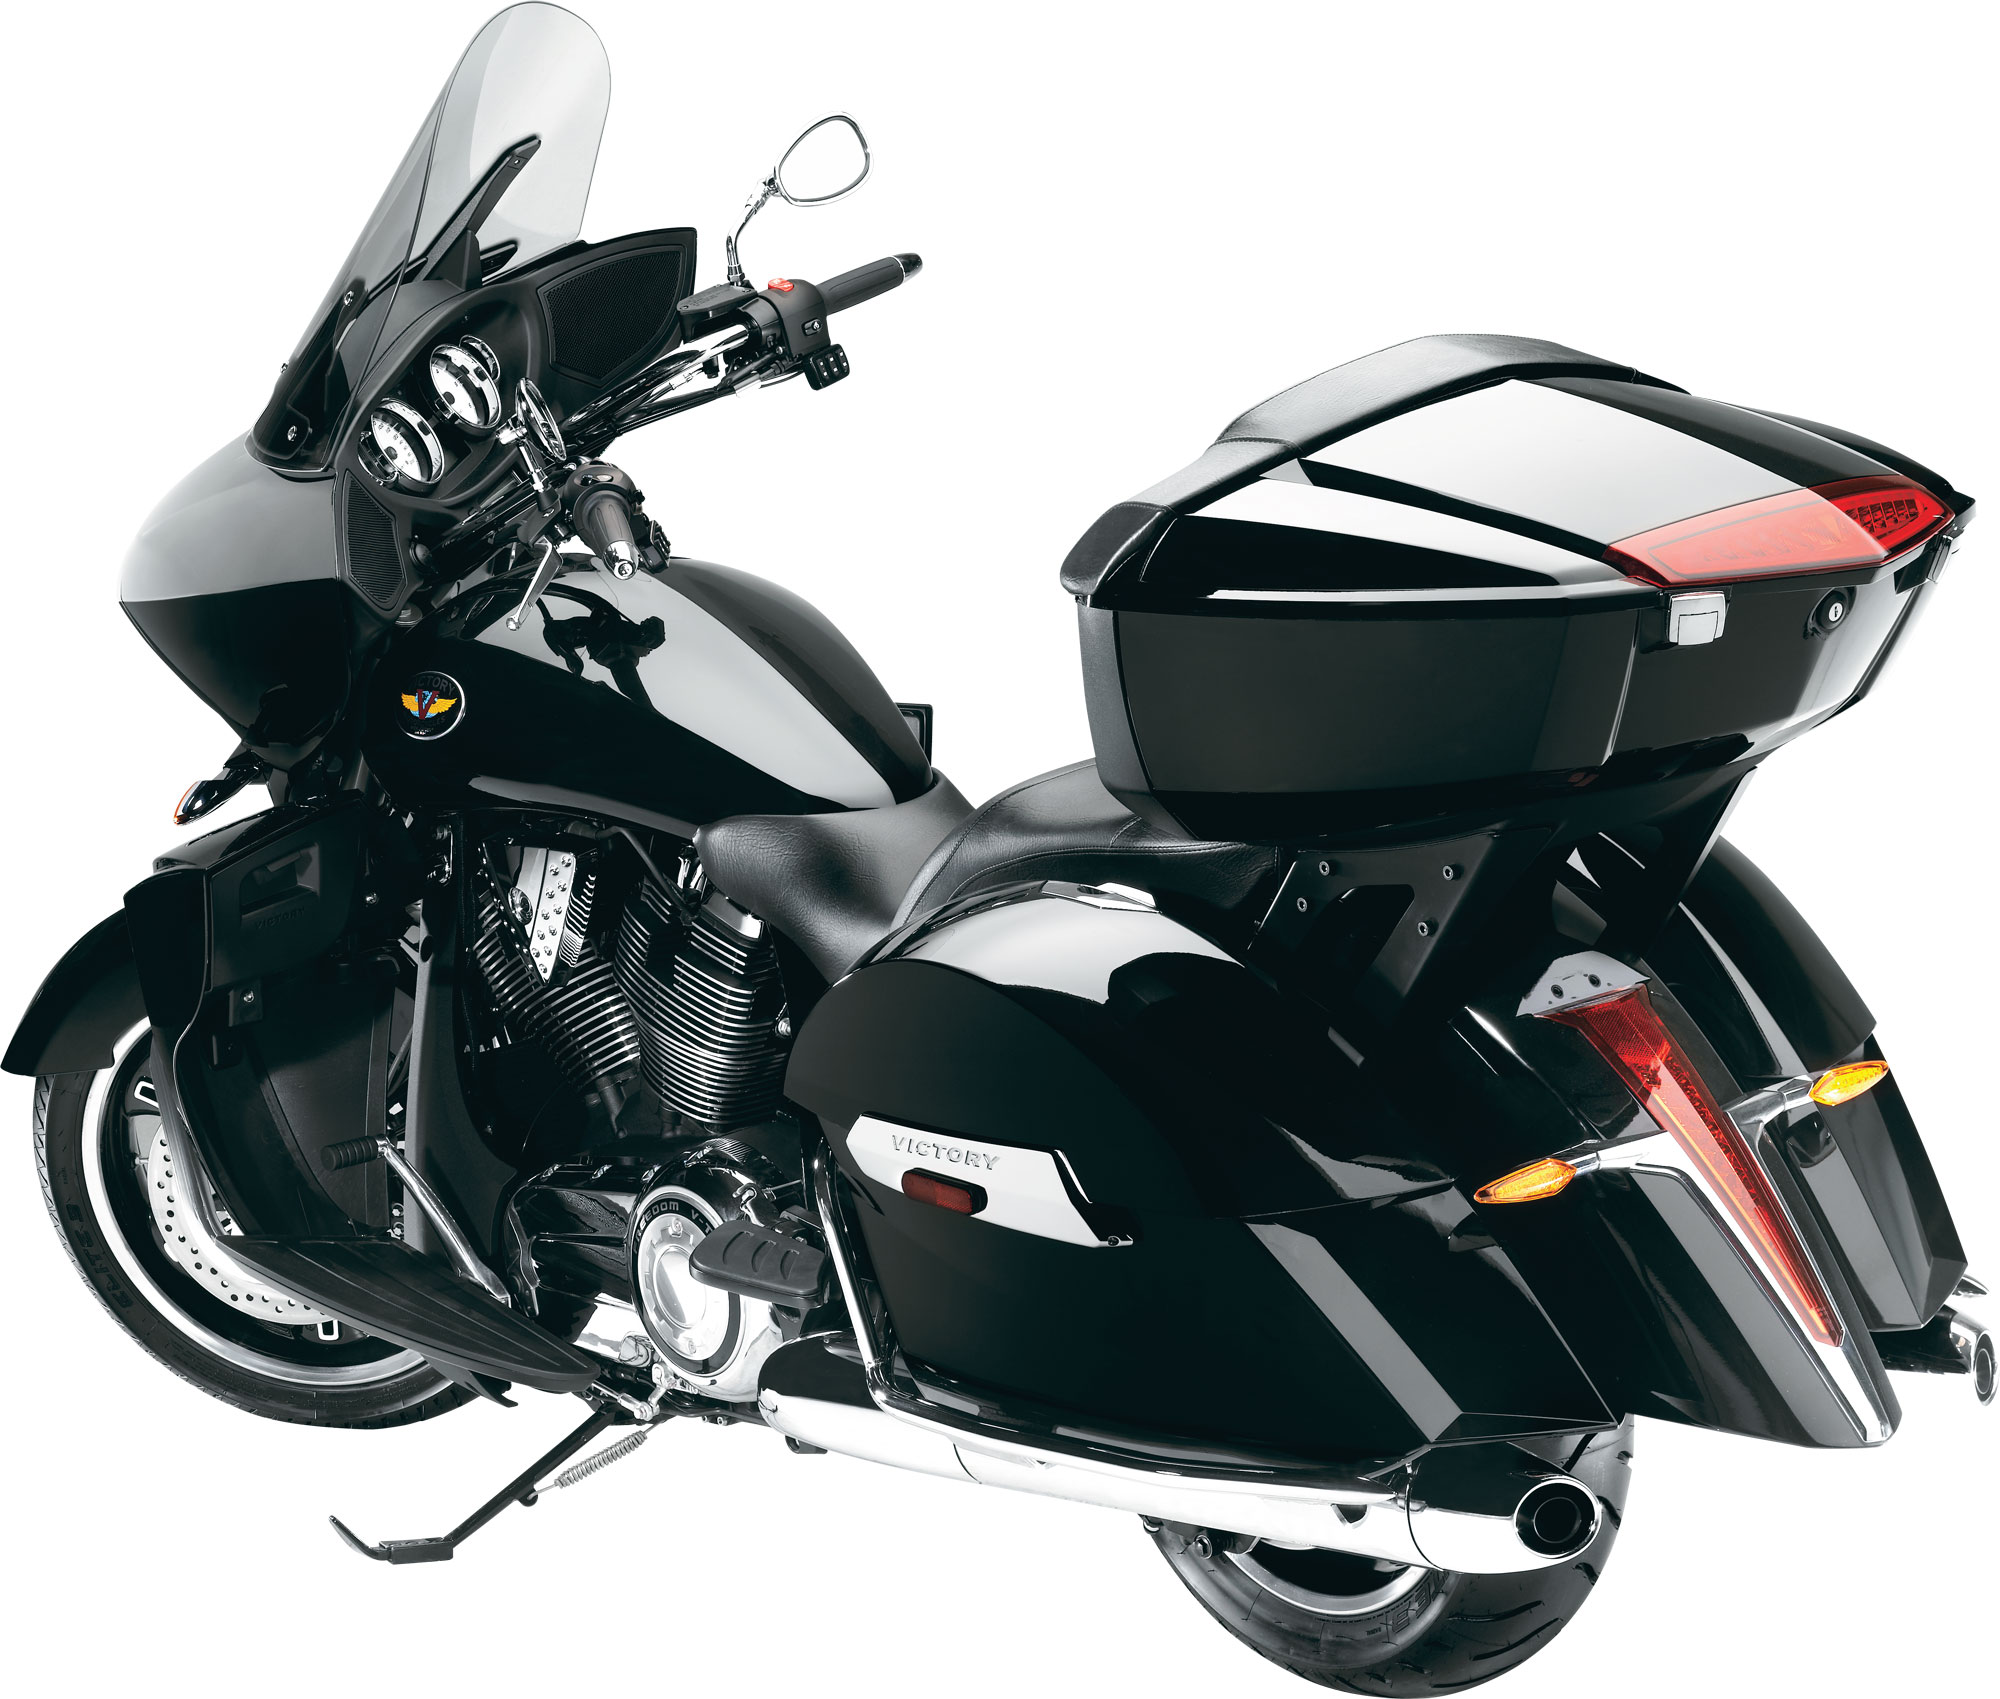 2012 Victory Cross Country Tour Top Speed Engine Diagram